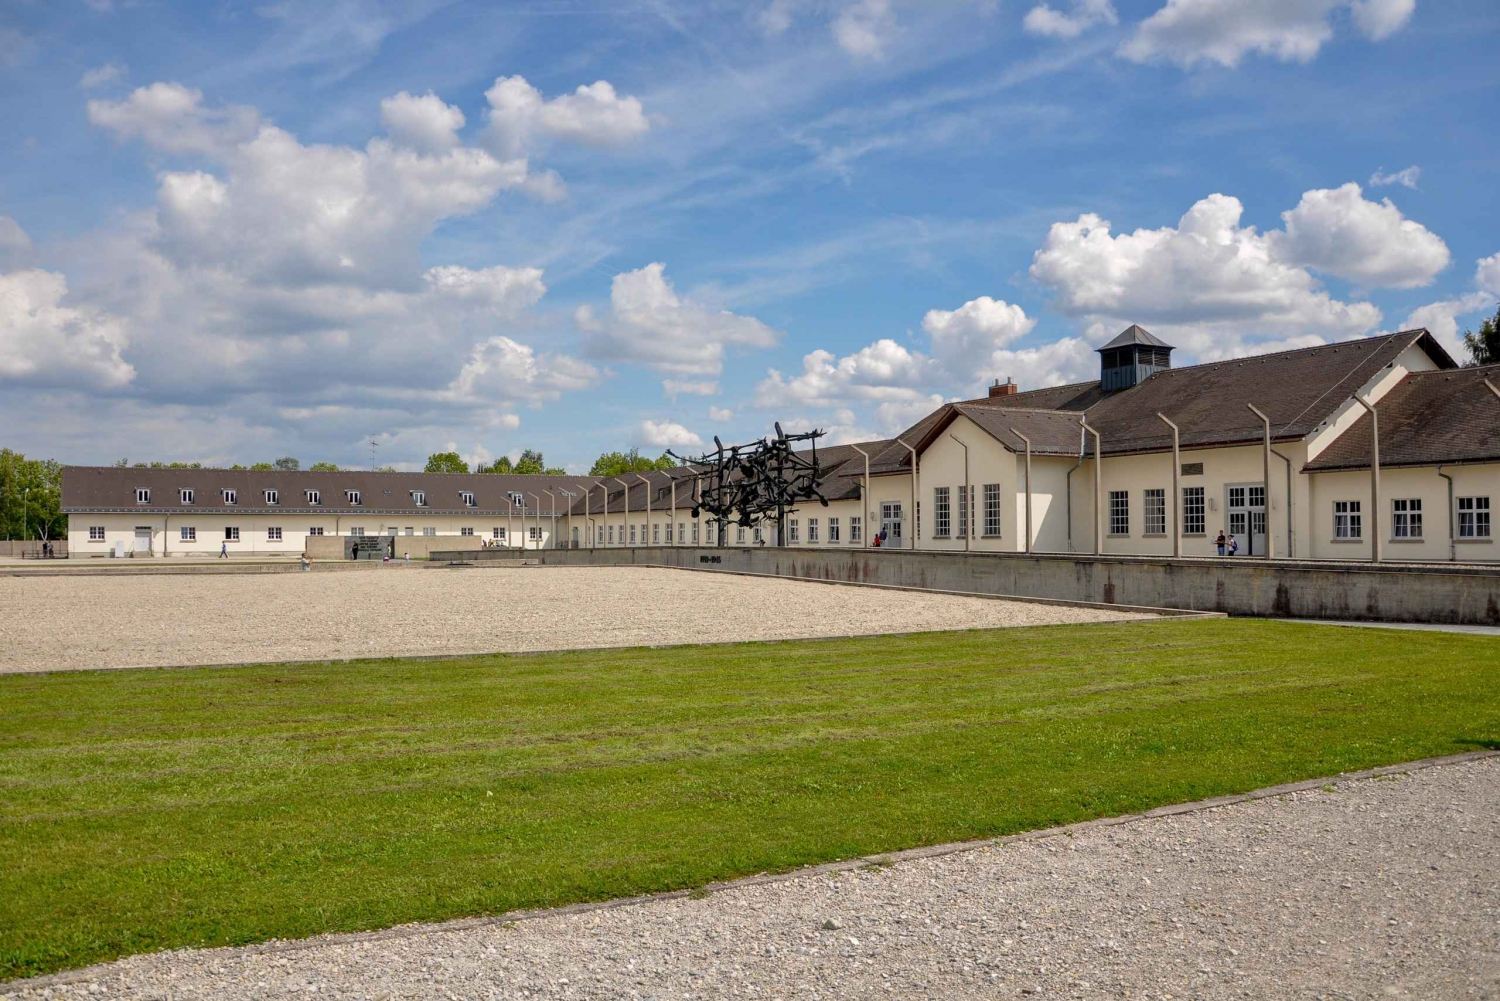 From Dachau Memorial Site Day Tour in English